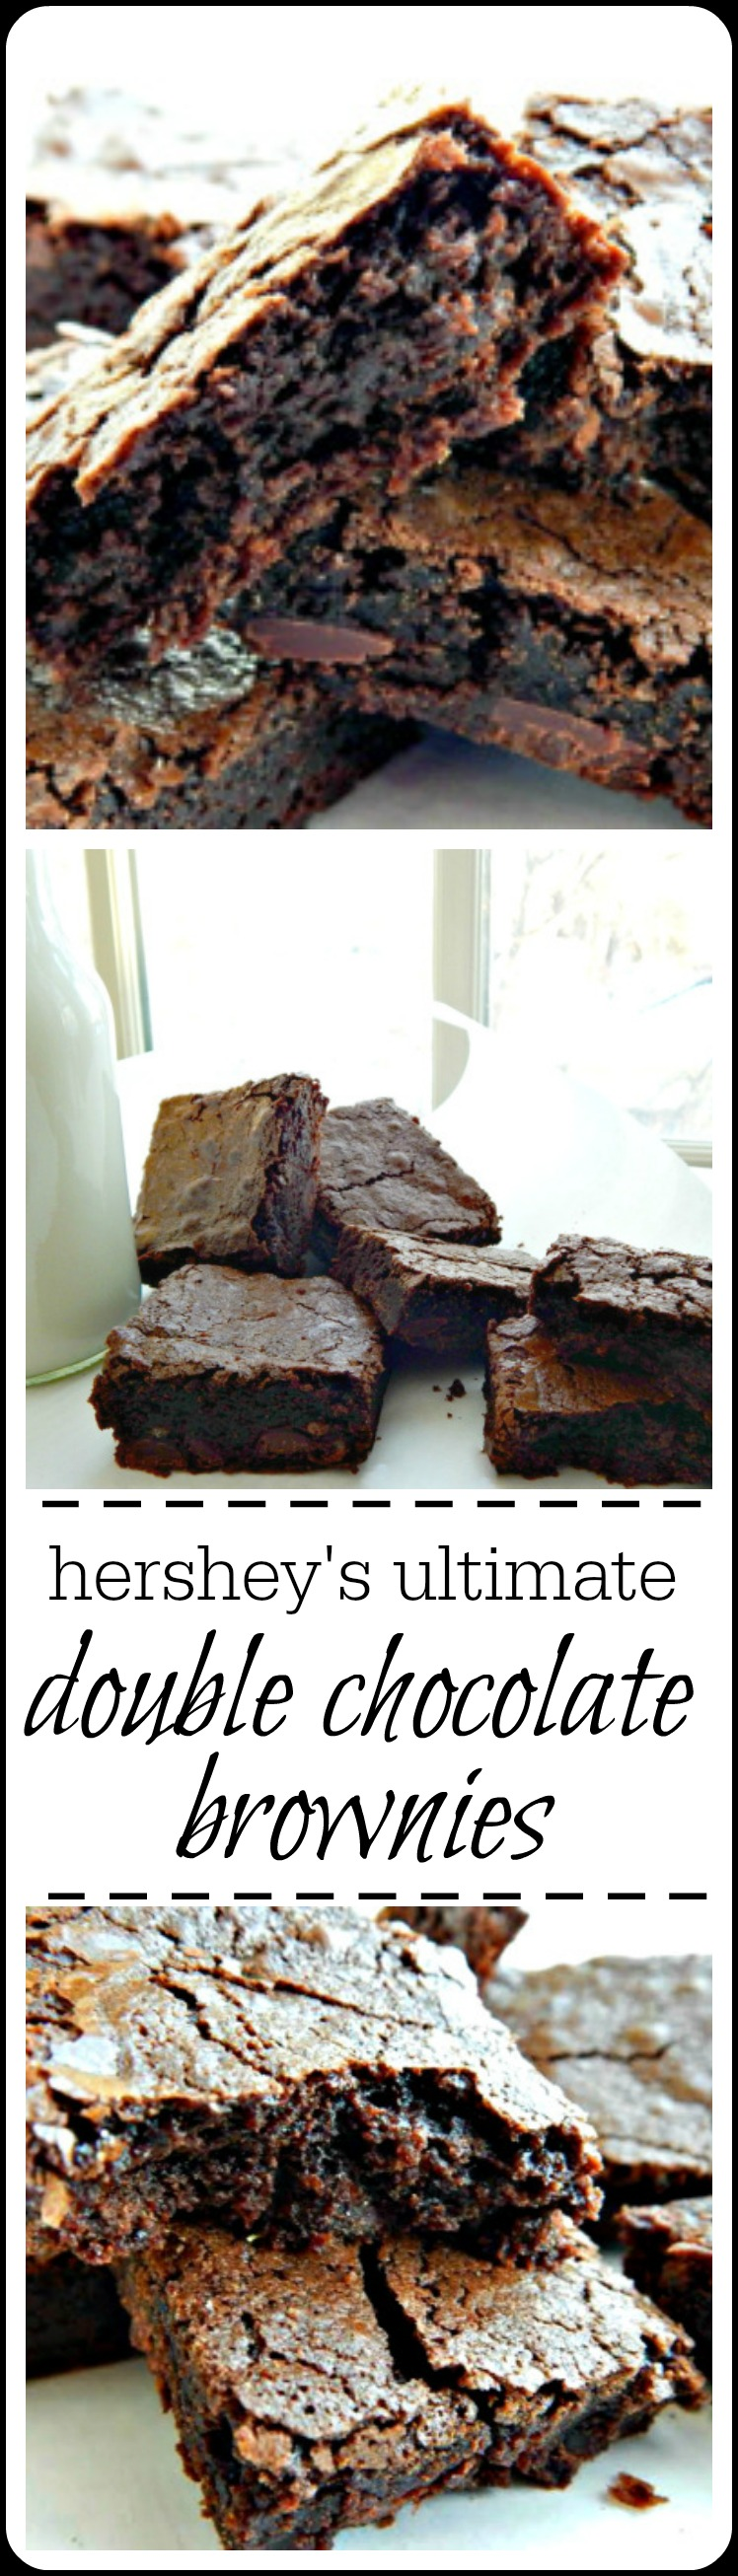 Hershey's Ultimate Double Chocolate Brownies are serious chocolate flavor; heavy, deep, dark and chewy with the hallmark shiny crust. #HersheysBrownie #HersheysUltimateDoubleChocolateBrownie